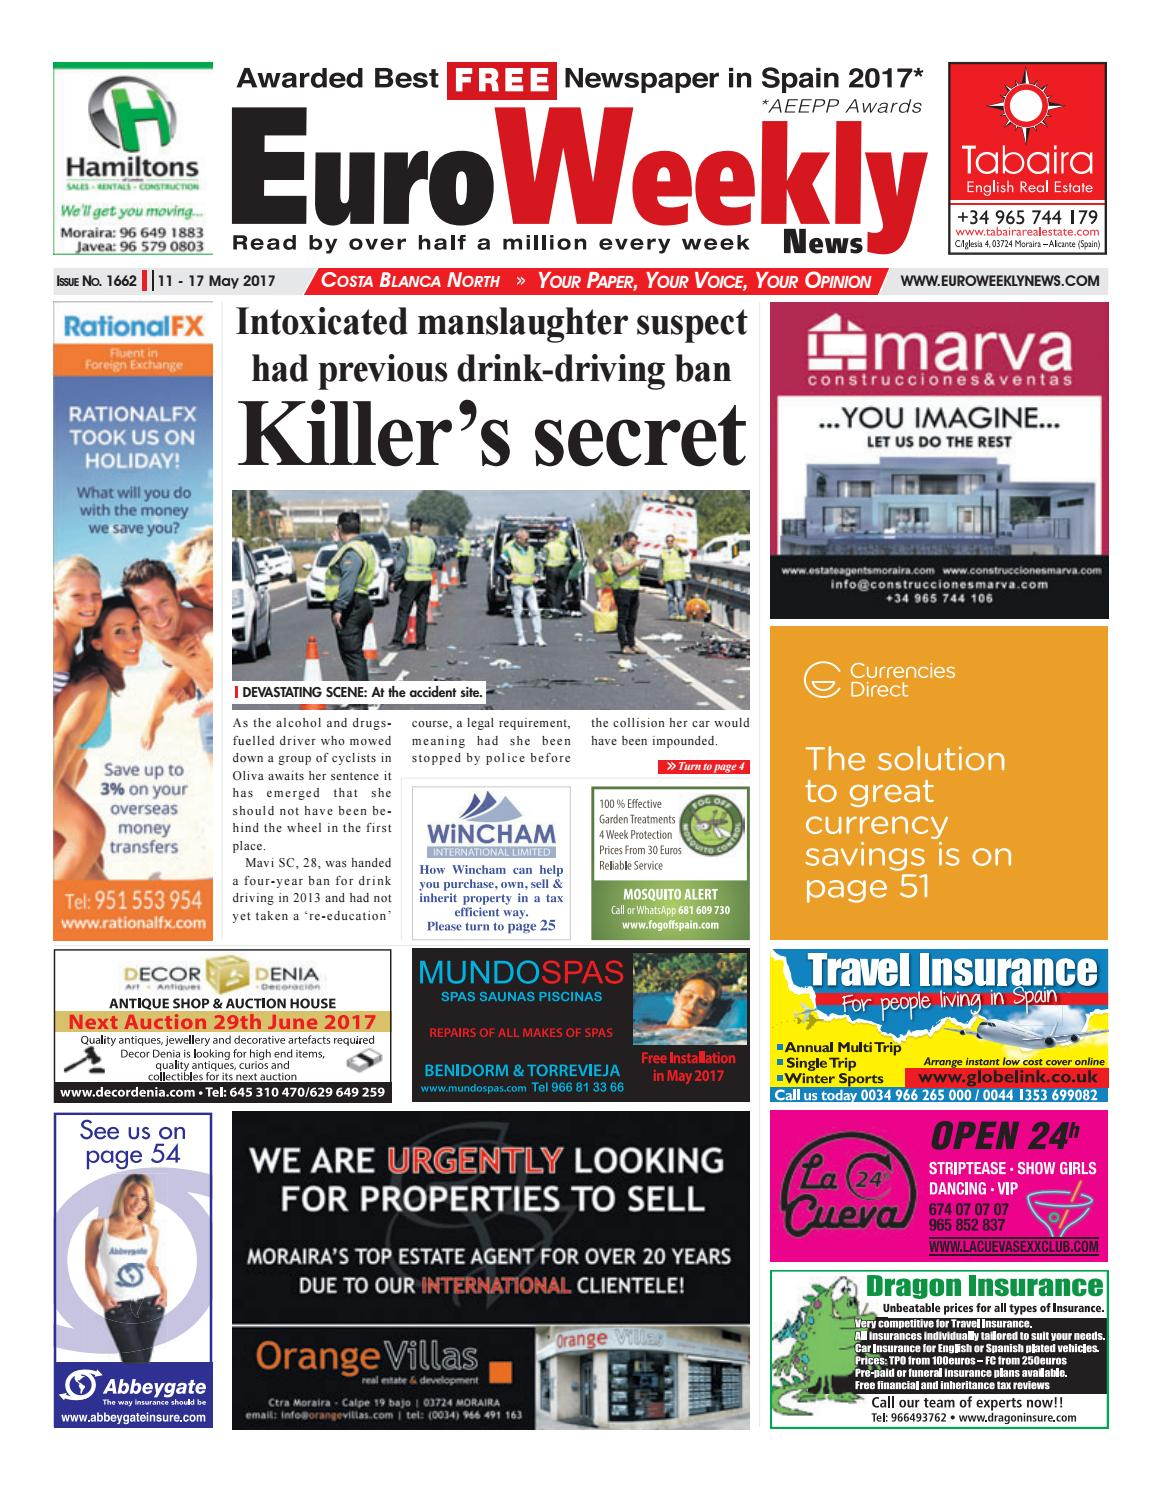 704ec27355f7 Euro Weekly News - Costa Blanca North 11 - 17 May 2017 Issue 1662 by Euro  Weekly News Media S.A. - issuu